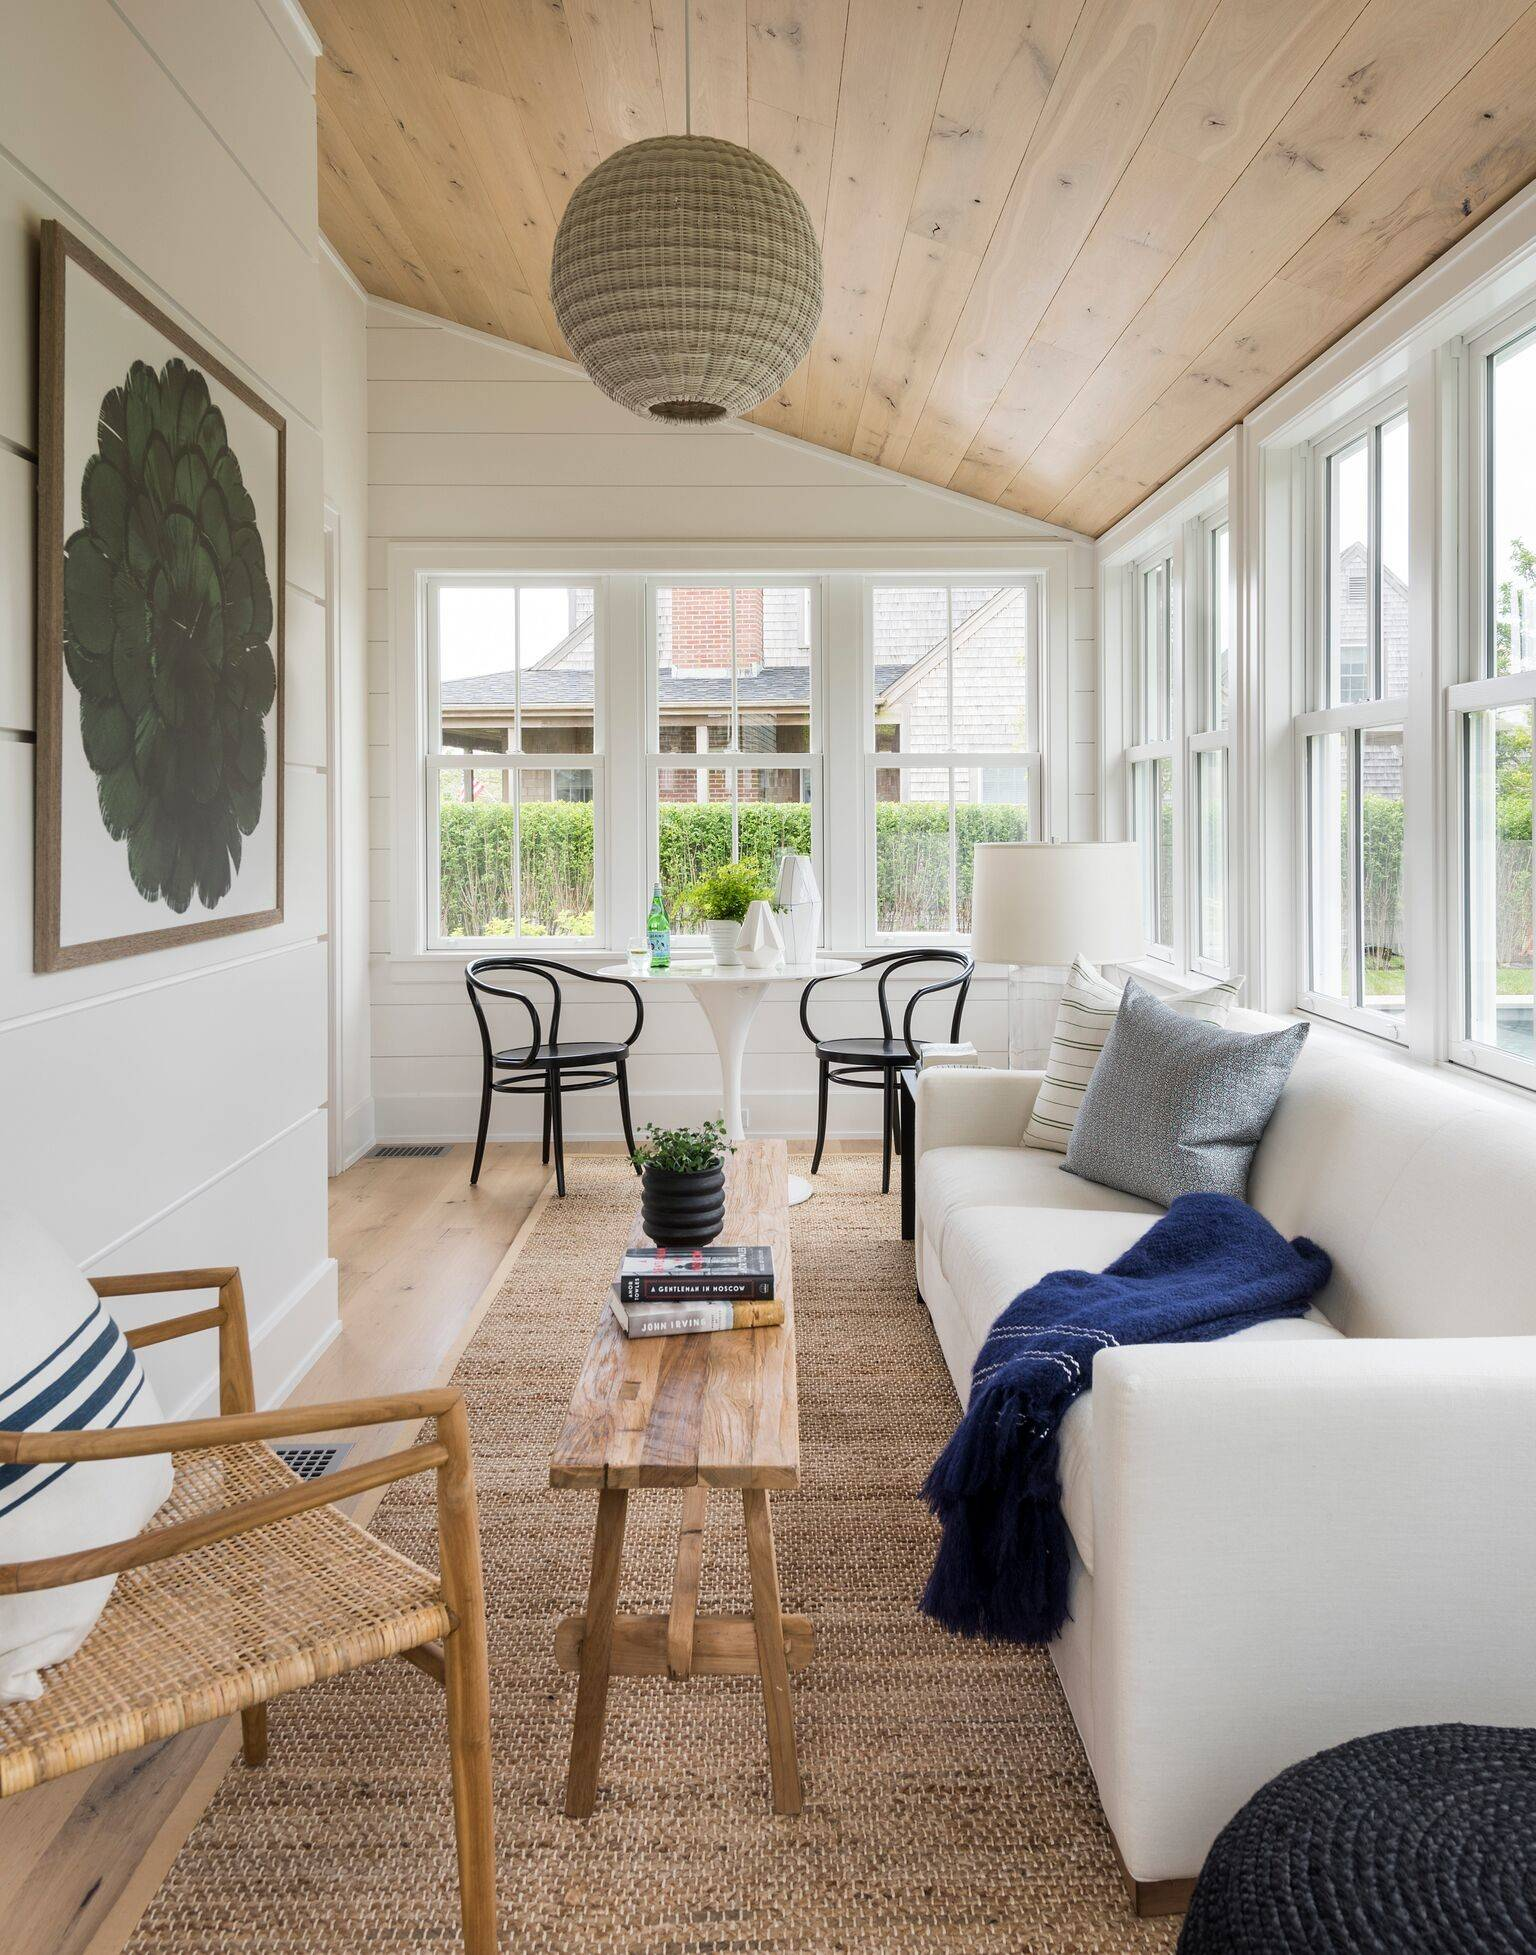 75 Beautiful Sunroom Pictures Ideas January 2021 Houzz